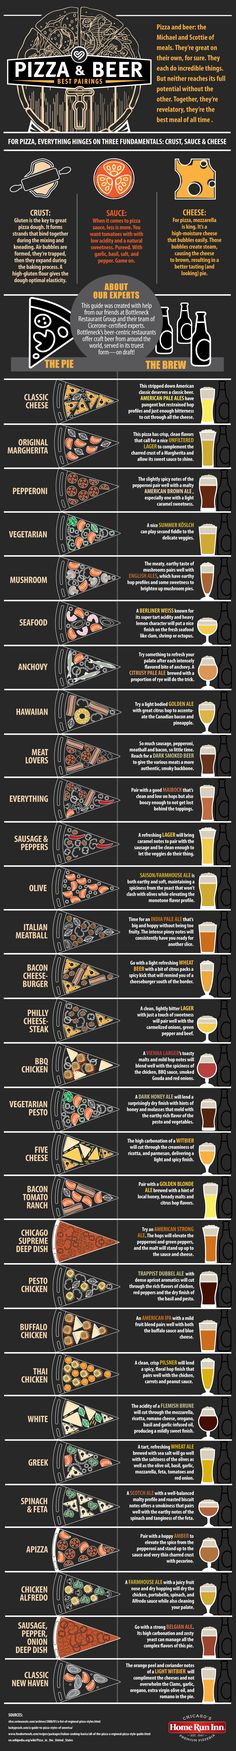 Beer + Pizza Pairings Guide | Home Run Inn